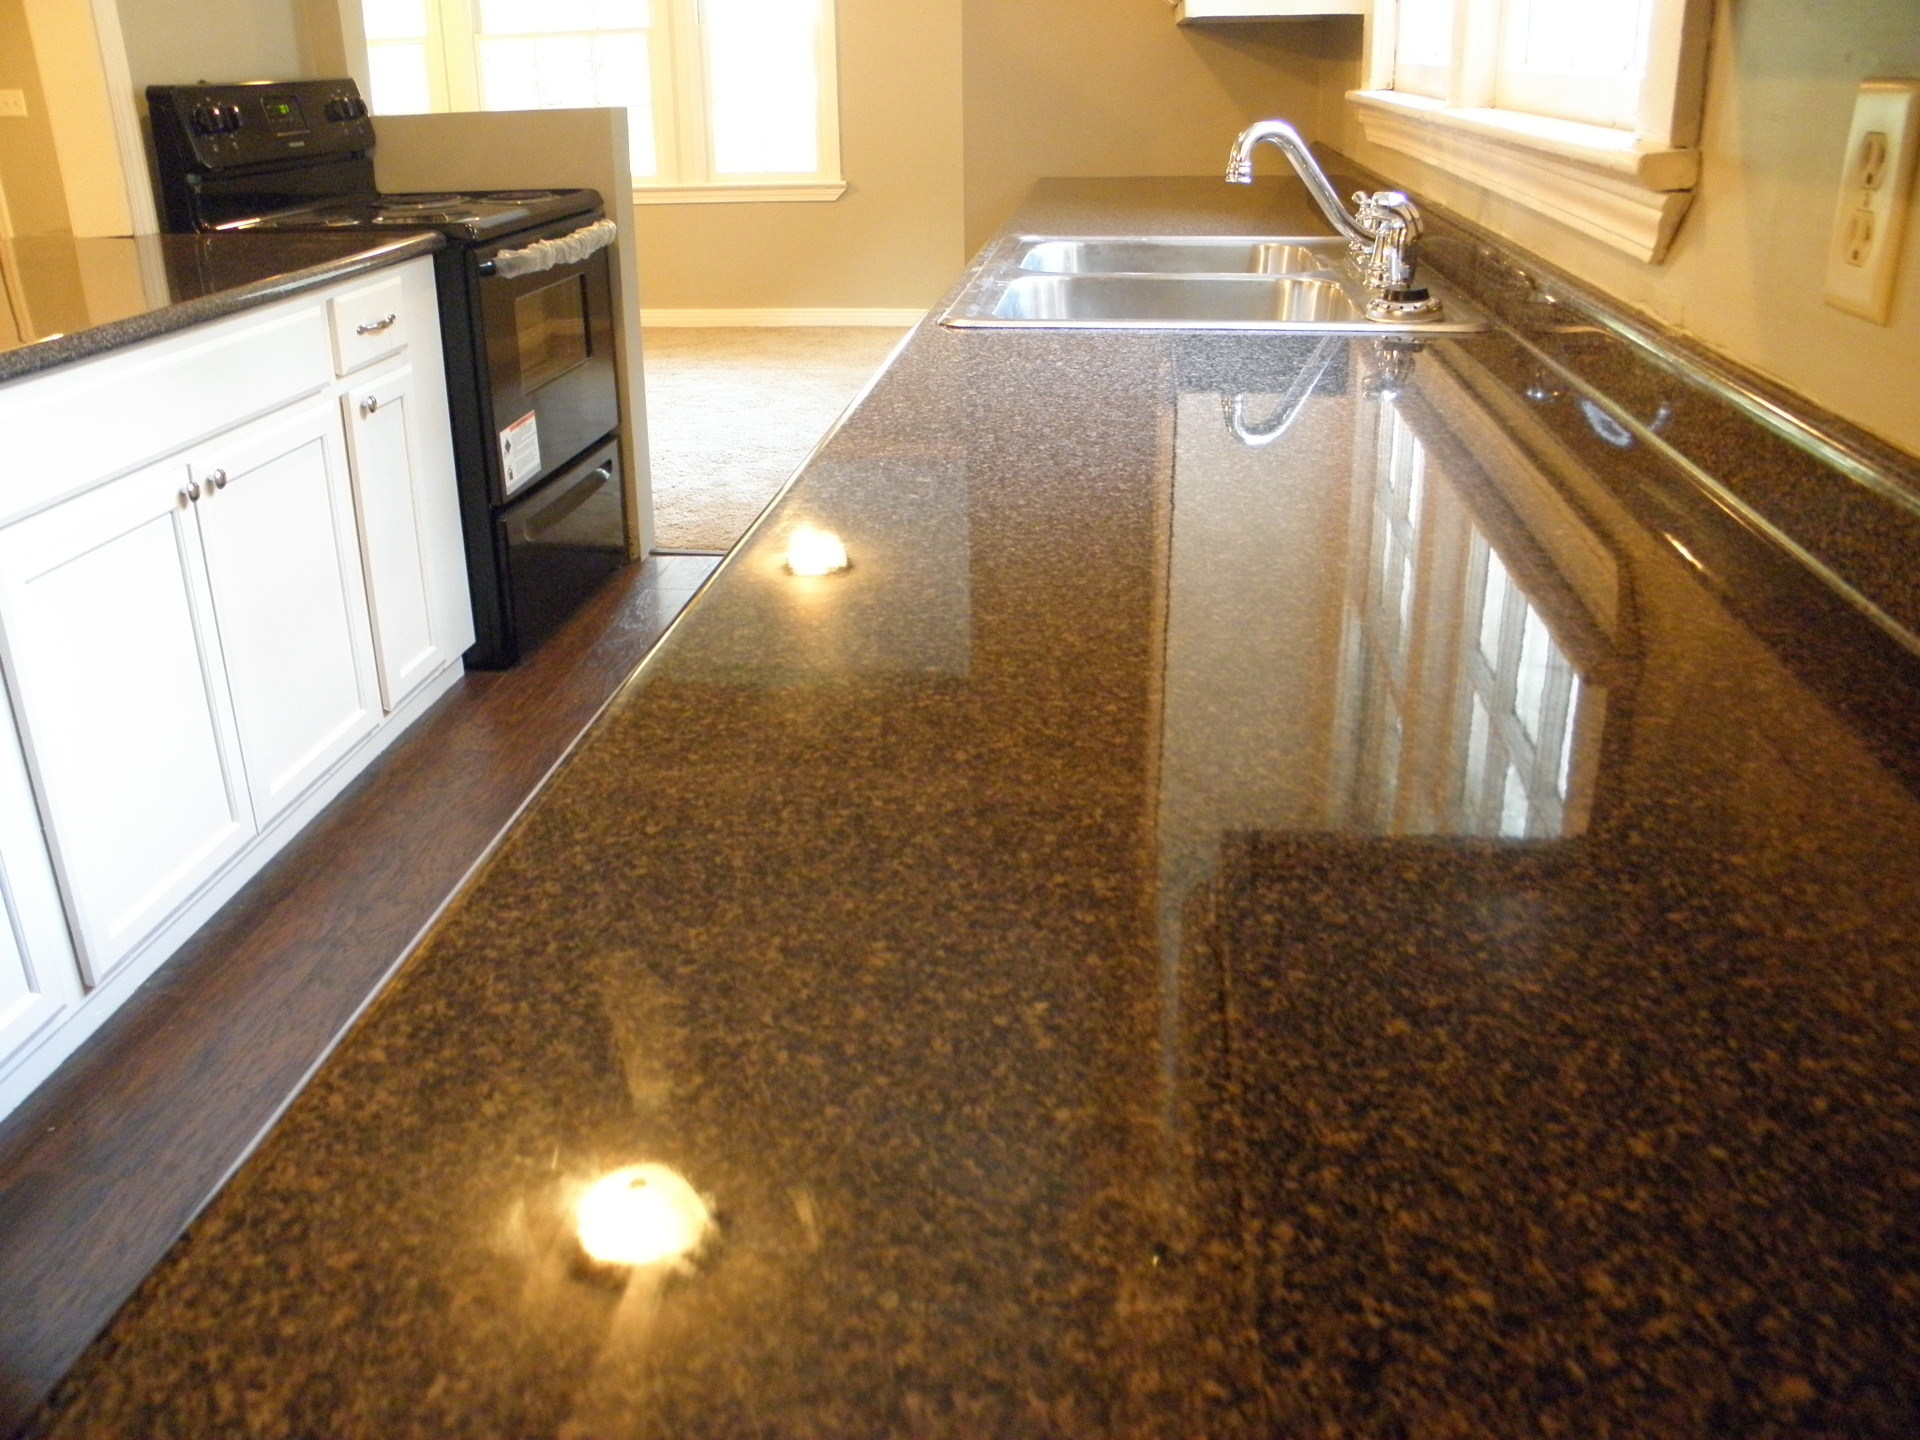 High Gloss, High Quality Countertops